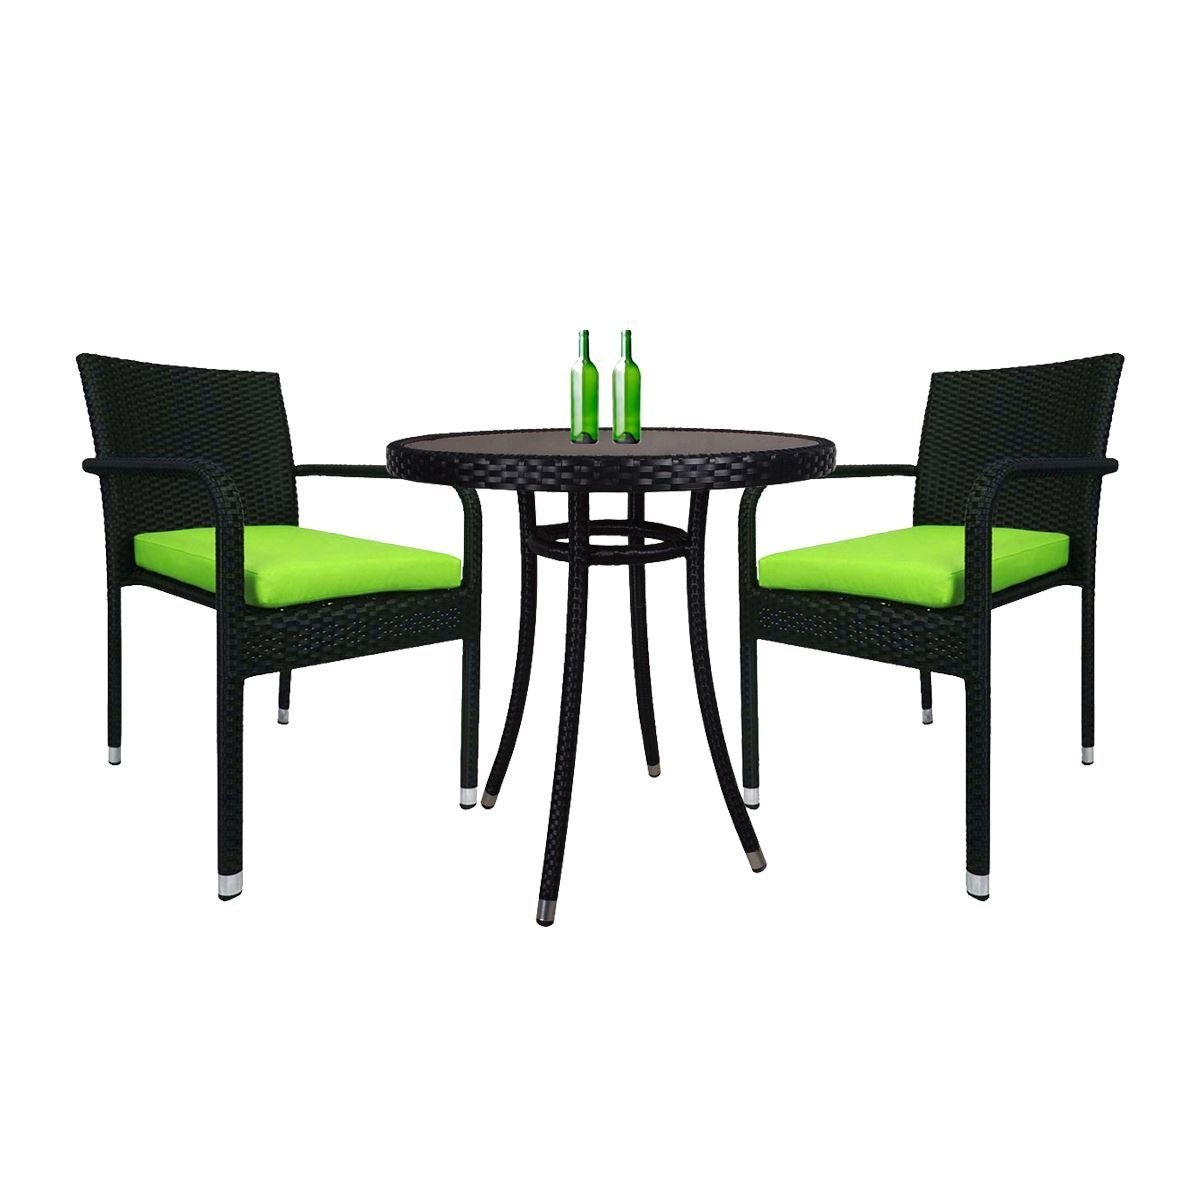 Balcony 2 Chair Bistro Set, Green Cushion